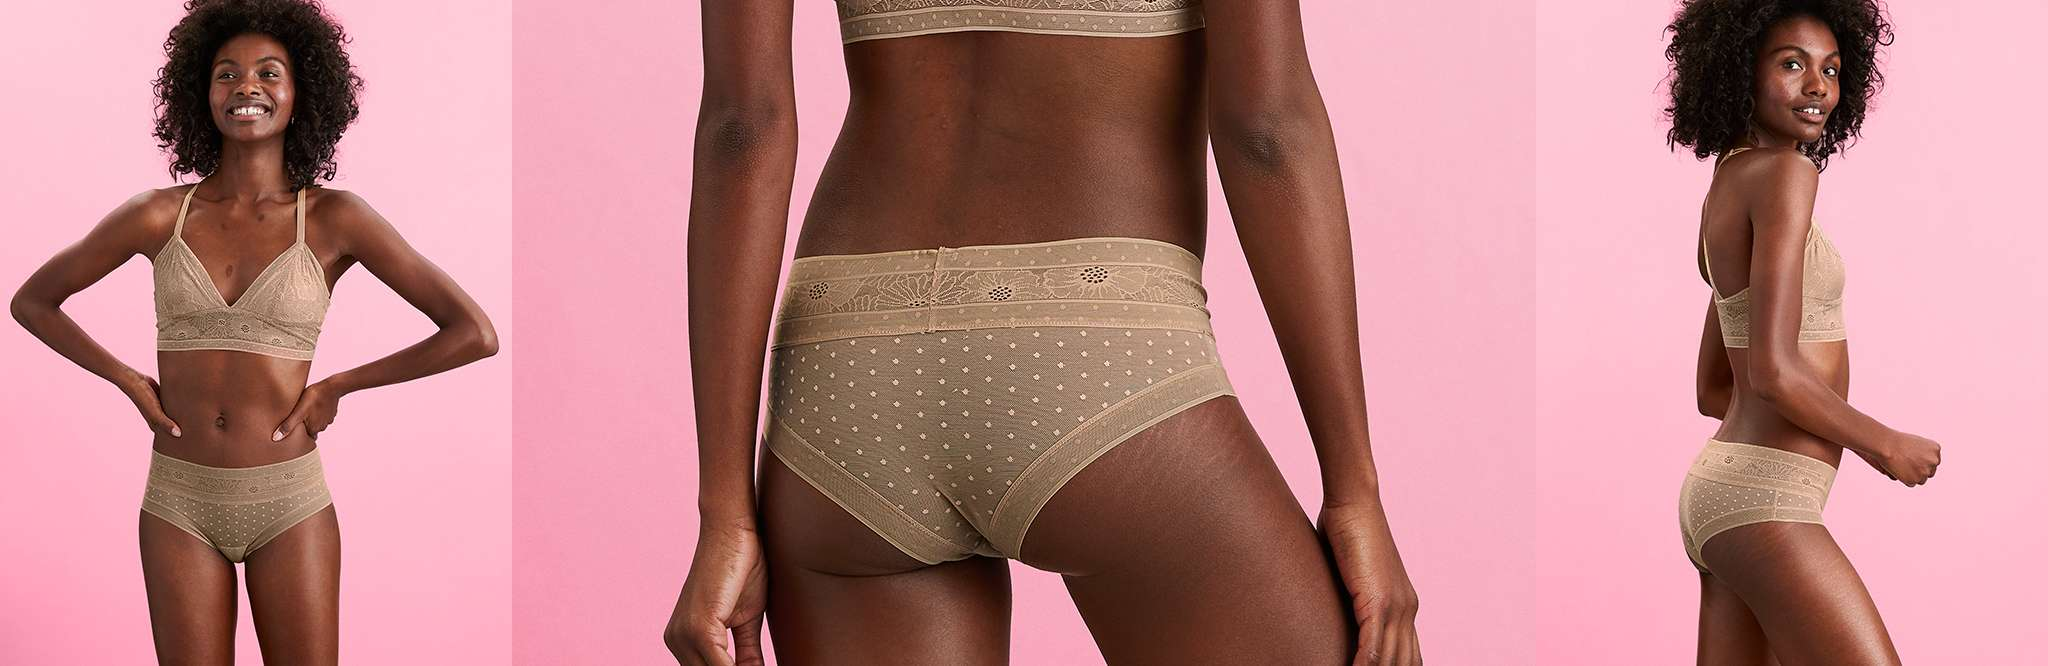 Aerie Cheekies Undie Image